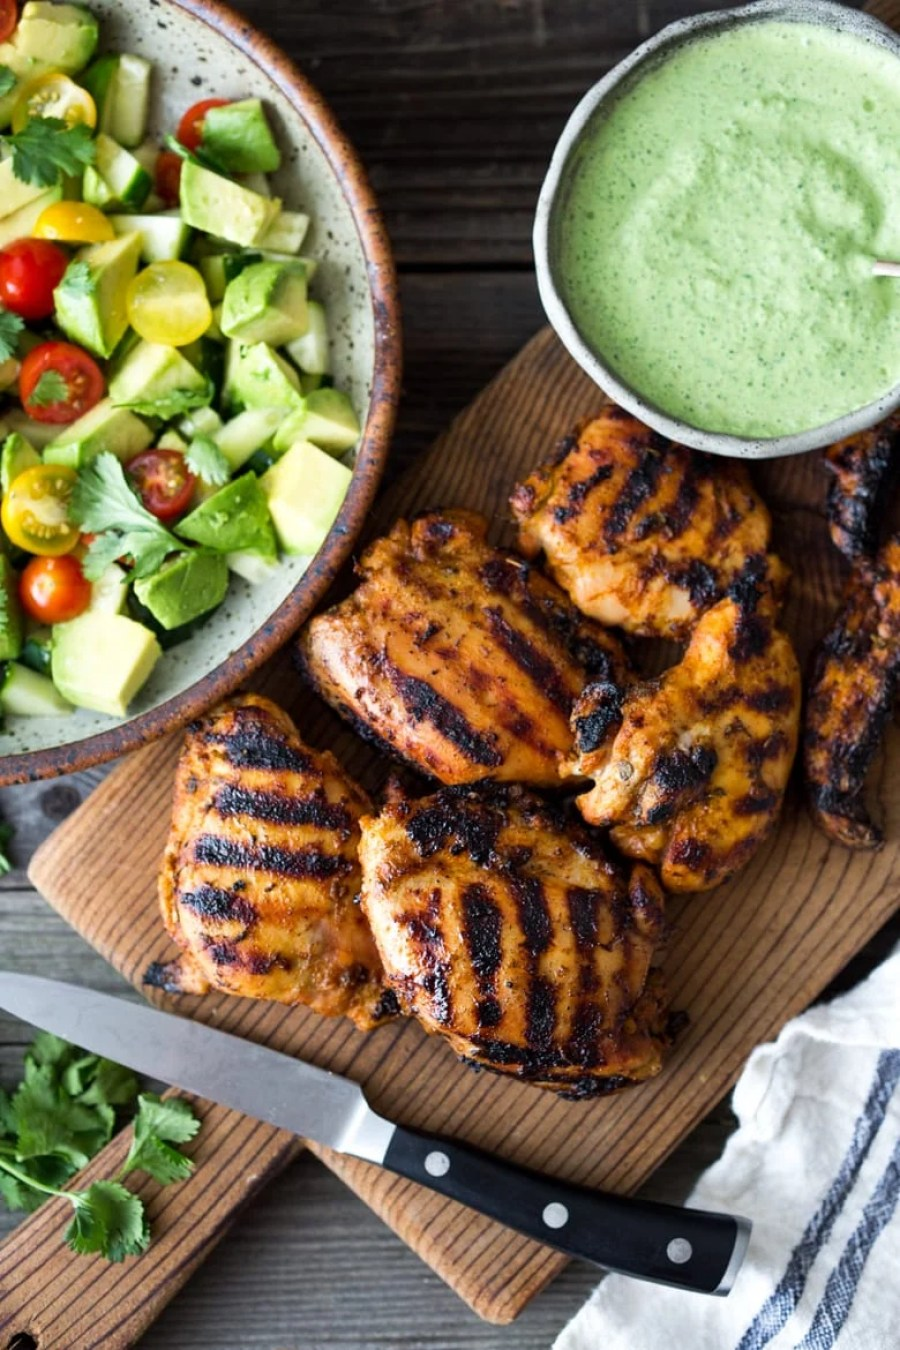 Simple, delicious Grilled Peruvian Chicken (Pollo a la Brasa) with spicy Green Sauce and an Avocado Tomato Cucumber Salad. Can be made in 40 minutes- perfect for weeknights!